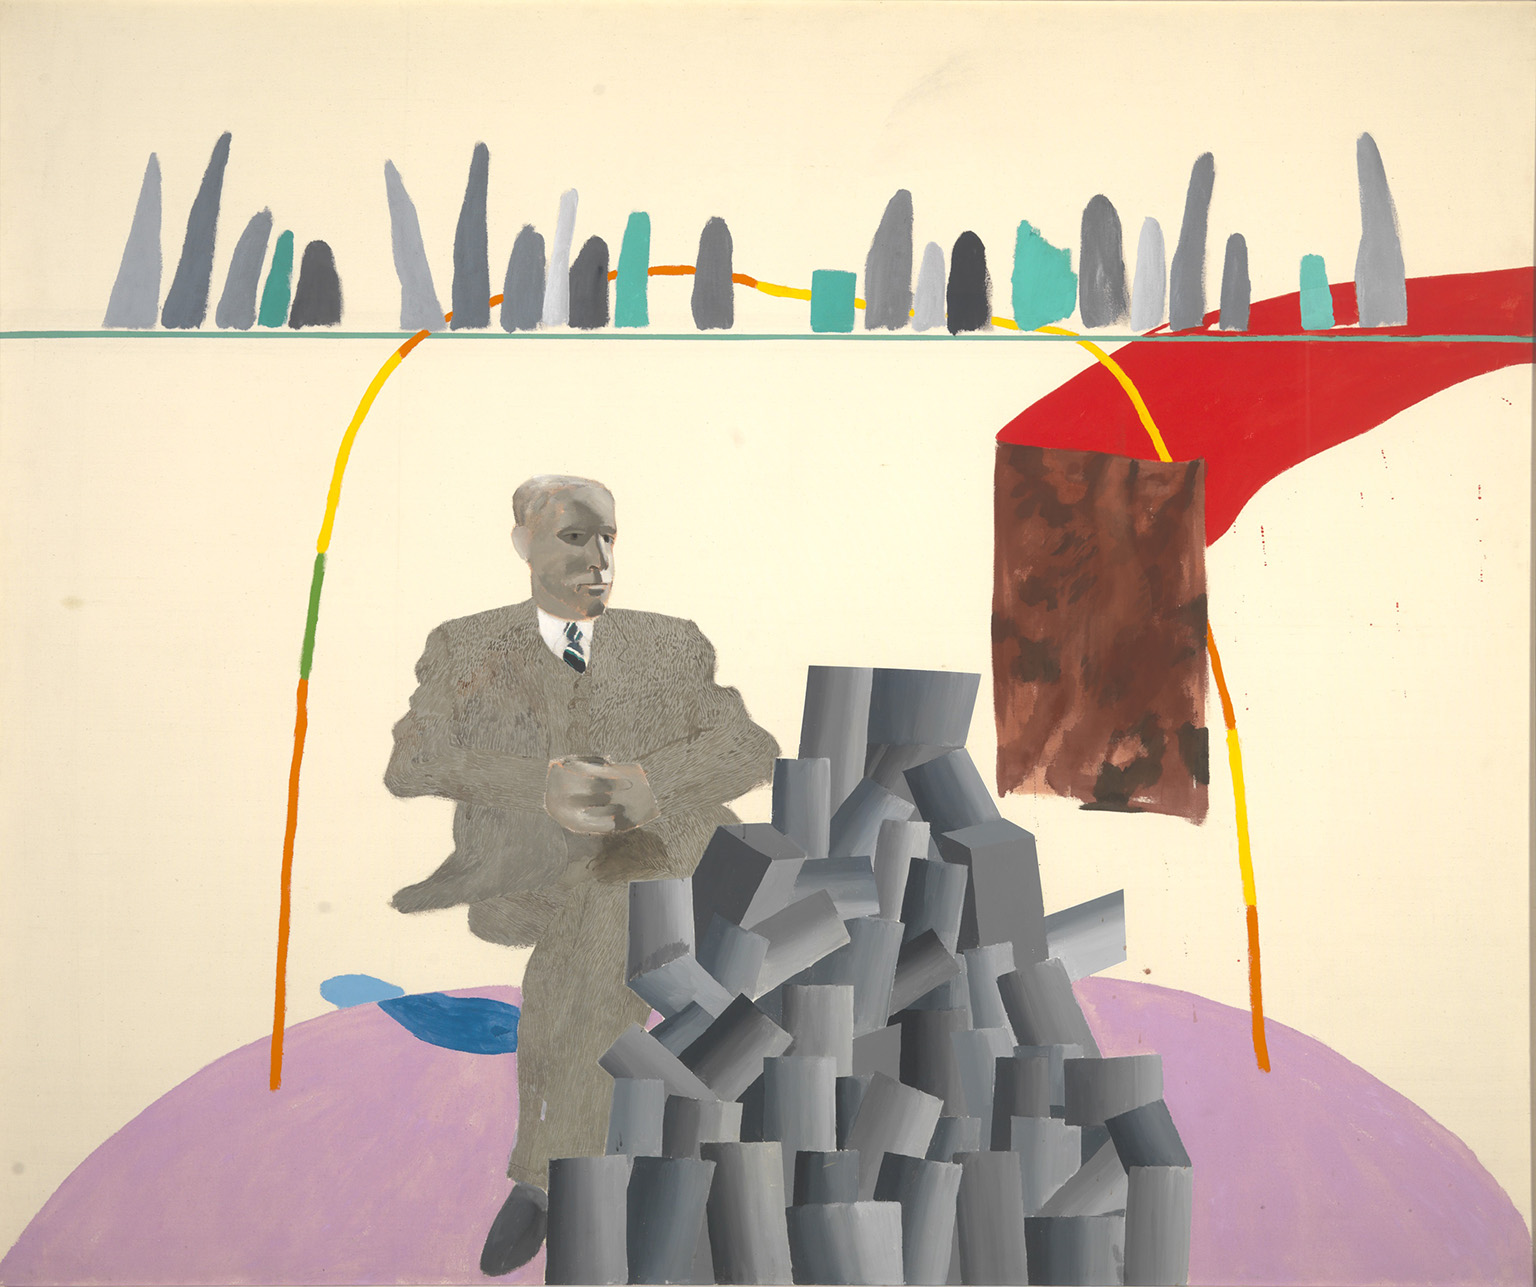 """David Hockney """"Portrait Surrounded by Artistic Devices"""" 1965 Acrylic on canvas 60 x 72"""" © David Hockney, Photo Credit: Richard Schmidt, Collection Arts Council, Southbank Centre, London"""